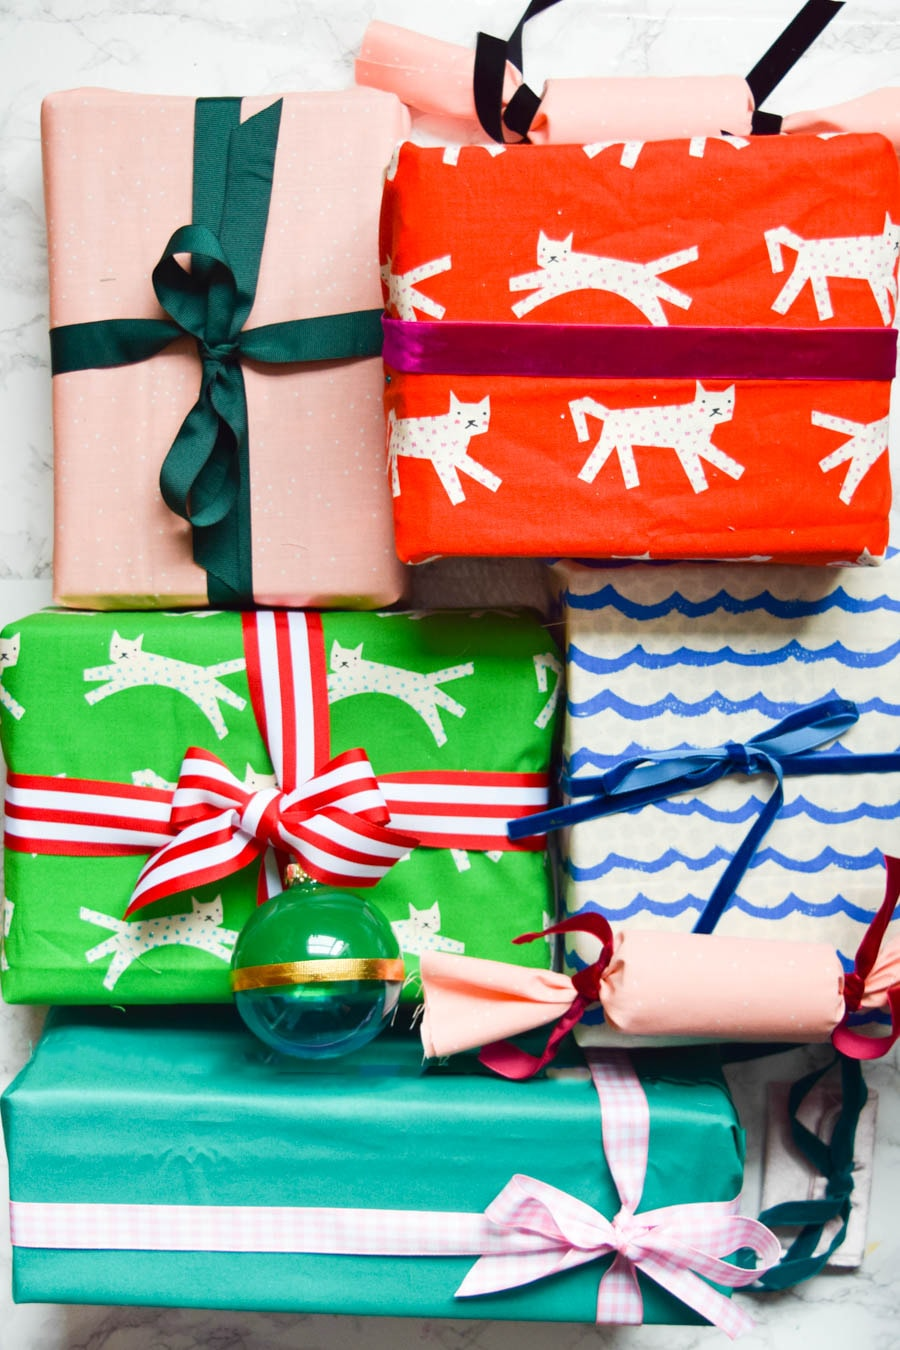 3 Ways To Wrap Gifts In Fabric Learn 3 Easy Ways To Wrap Gifts In Fabric That Require No Sewing Use Holiday Fabric For Festive Gift Wrapping Or Utilize These Techniques